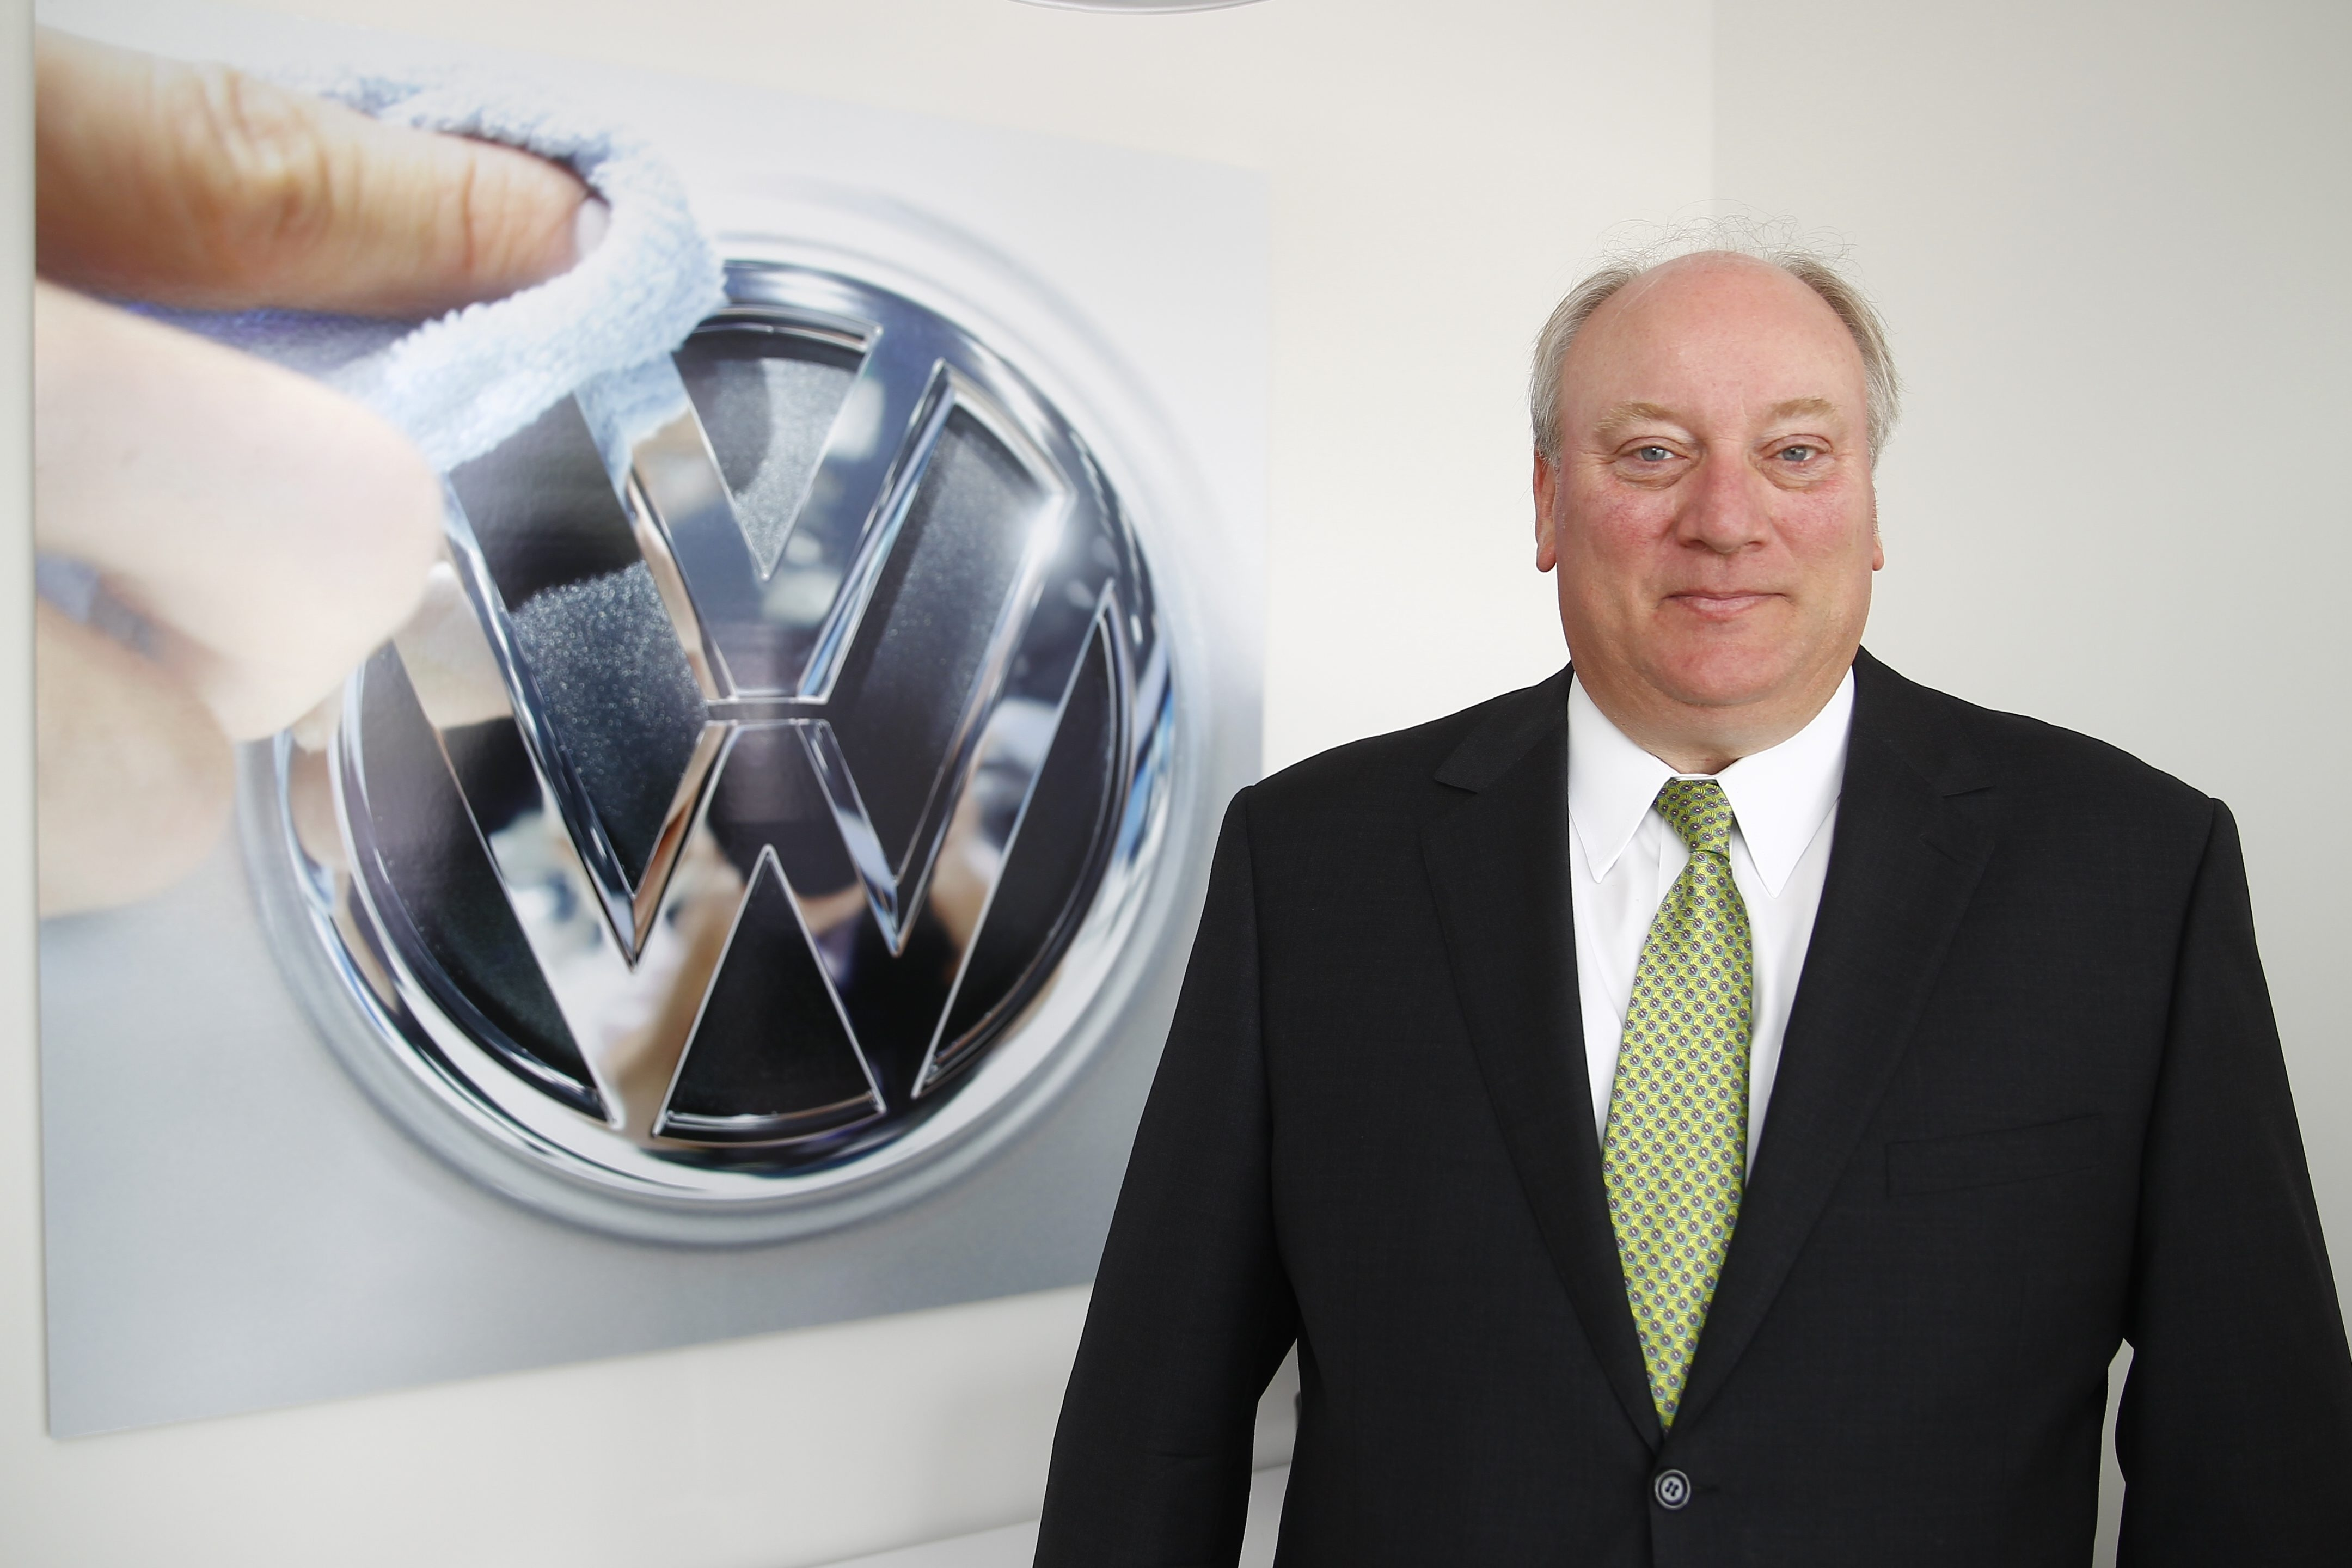 Q&A with Mike Basil, principal of Basil Volkswagen, which opens this month. Talking to him about the new dealership, state of VW sales in the U.S. and car sales in general, at  Basil Volkswagen   in  Lockport, N.Y. on Monday, July 21, 2014. (John Hickey/Buffalo News)